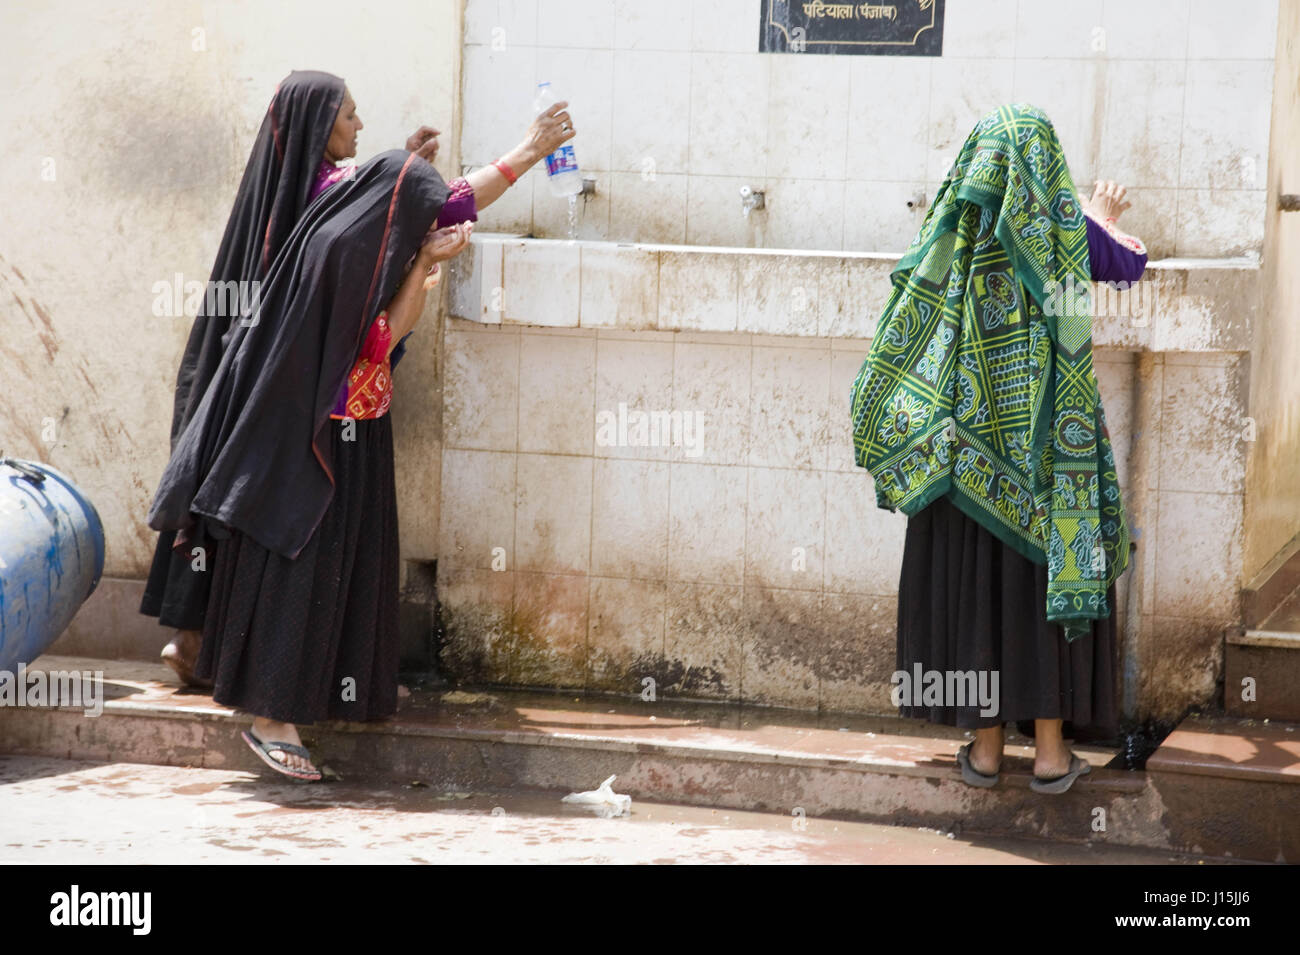 Women drinking cool water, vrindavan, mathura, uttar pradesh, india, asia - Stock Image